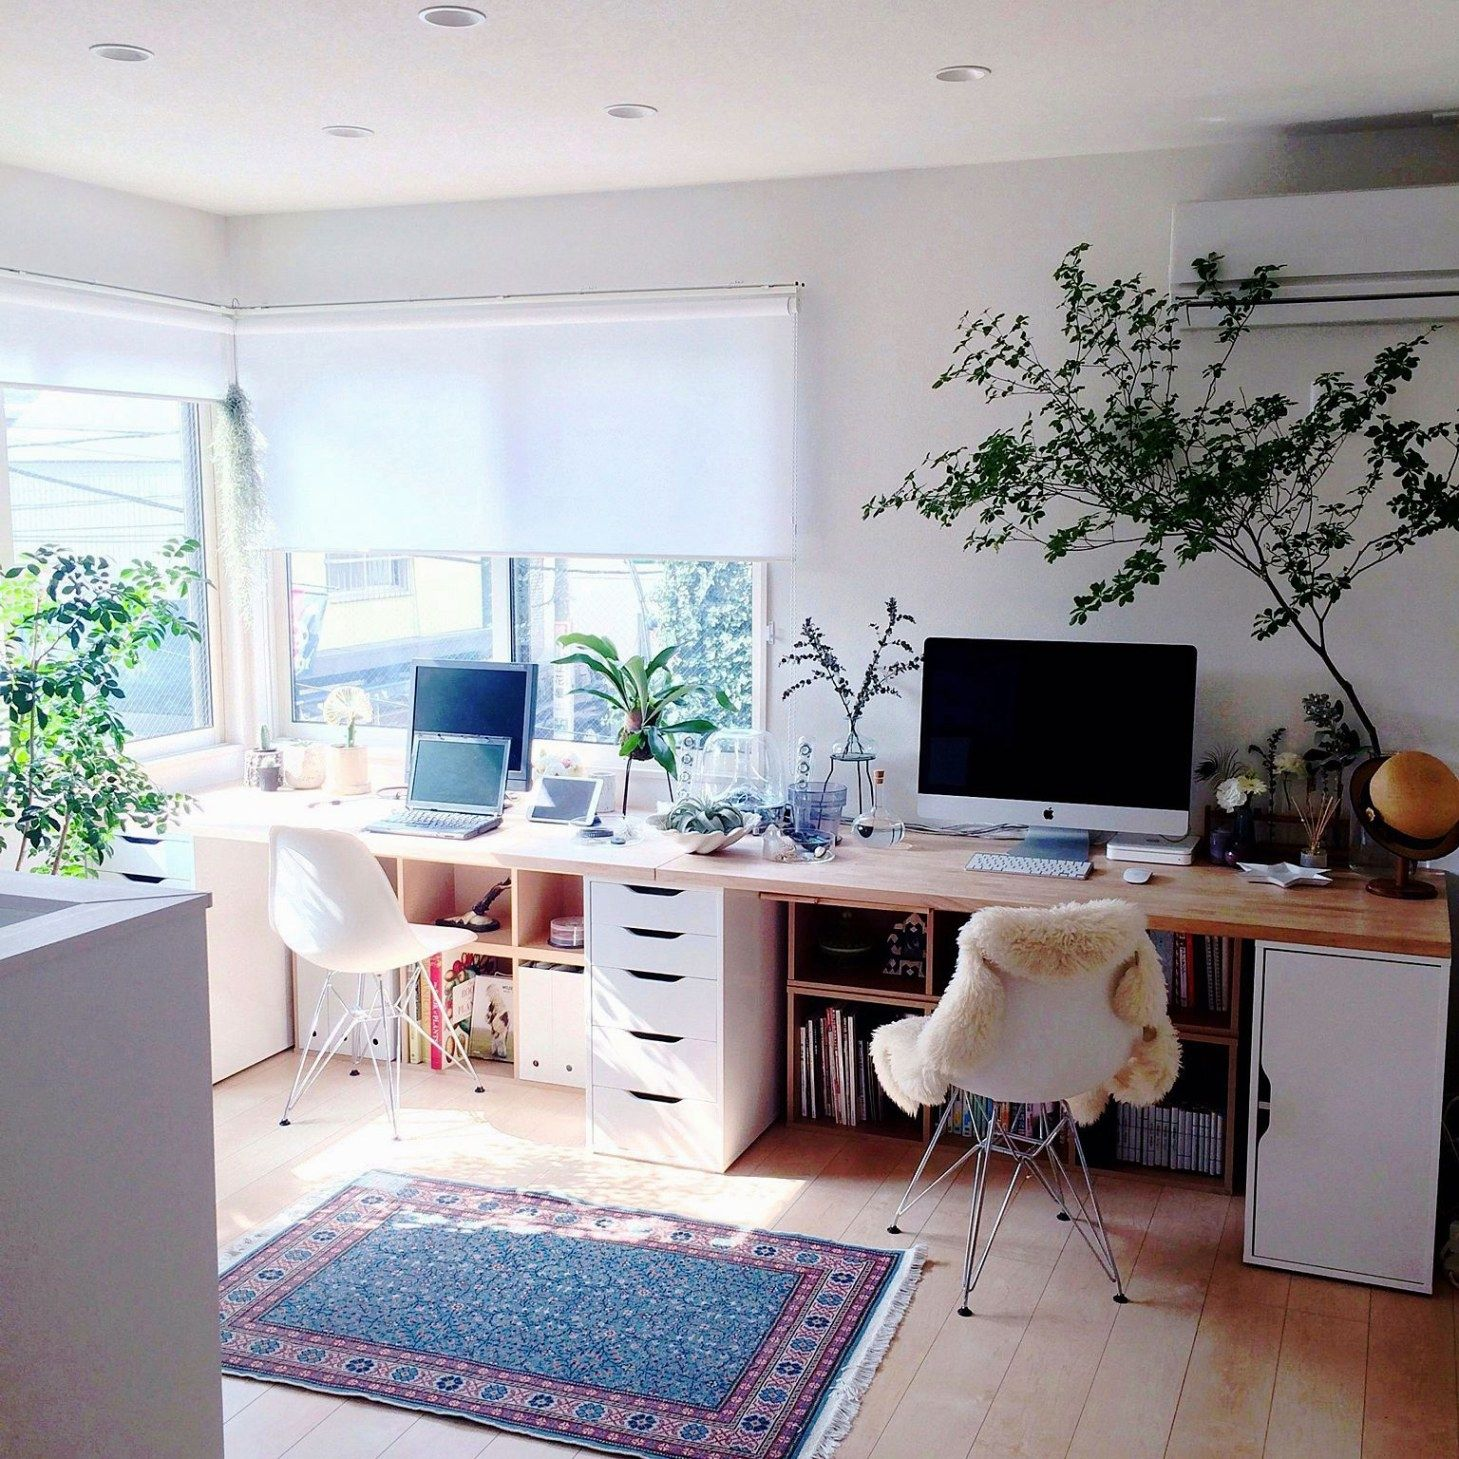 Pin By Marie Hope On Abode In Progress Home Office Design Home Office Decor Bathroom Interior Design